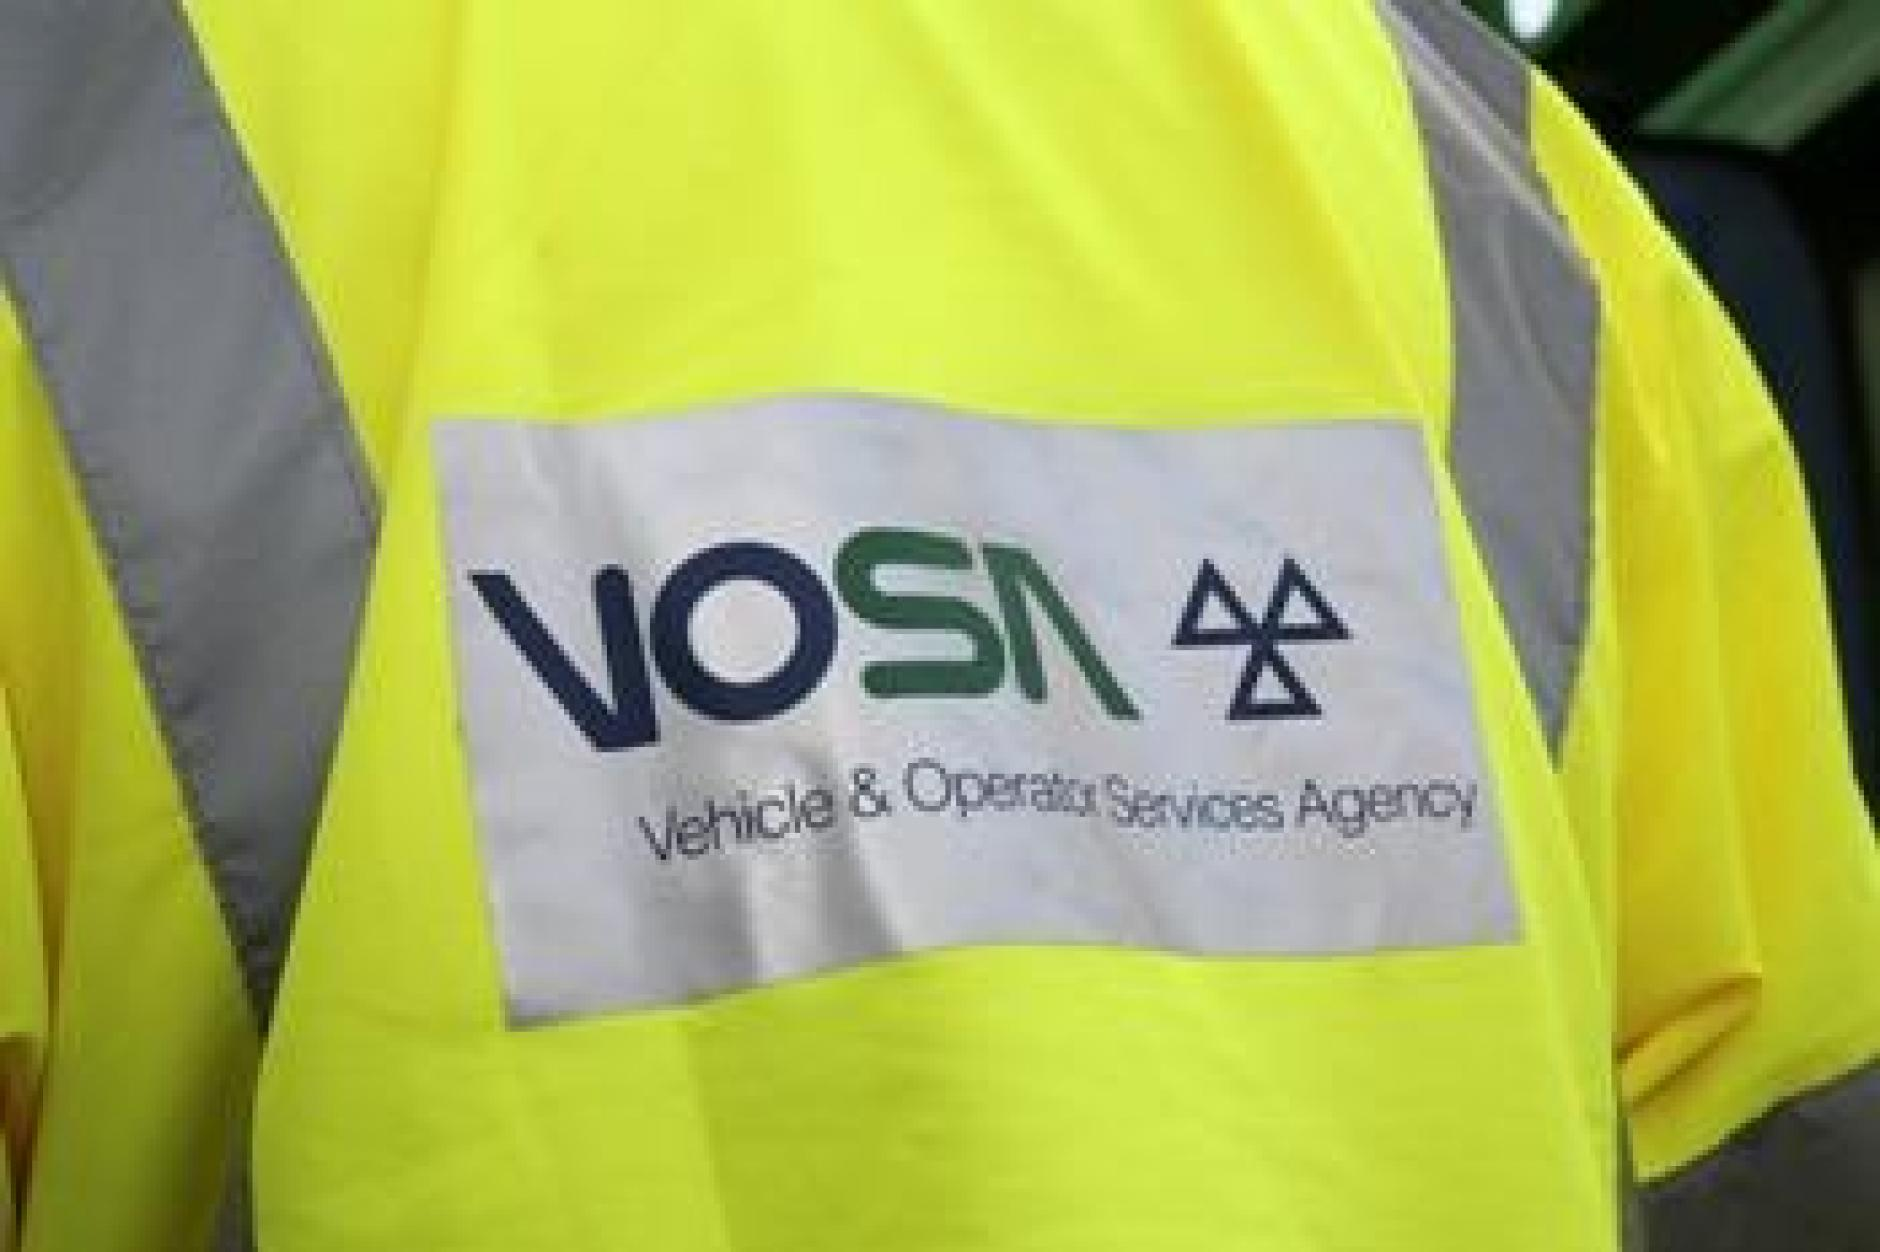 vosa makes updated hgv inspection manual available on line rh commercialmotor com Manual Inspection Effectiveness Manual Inspection Process